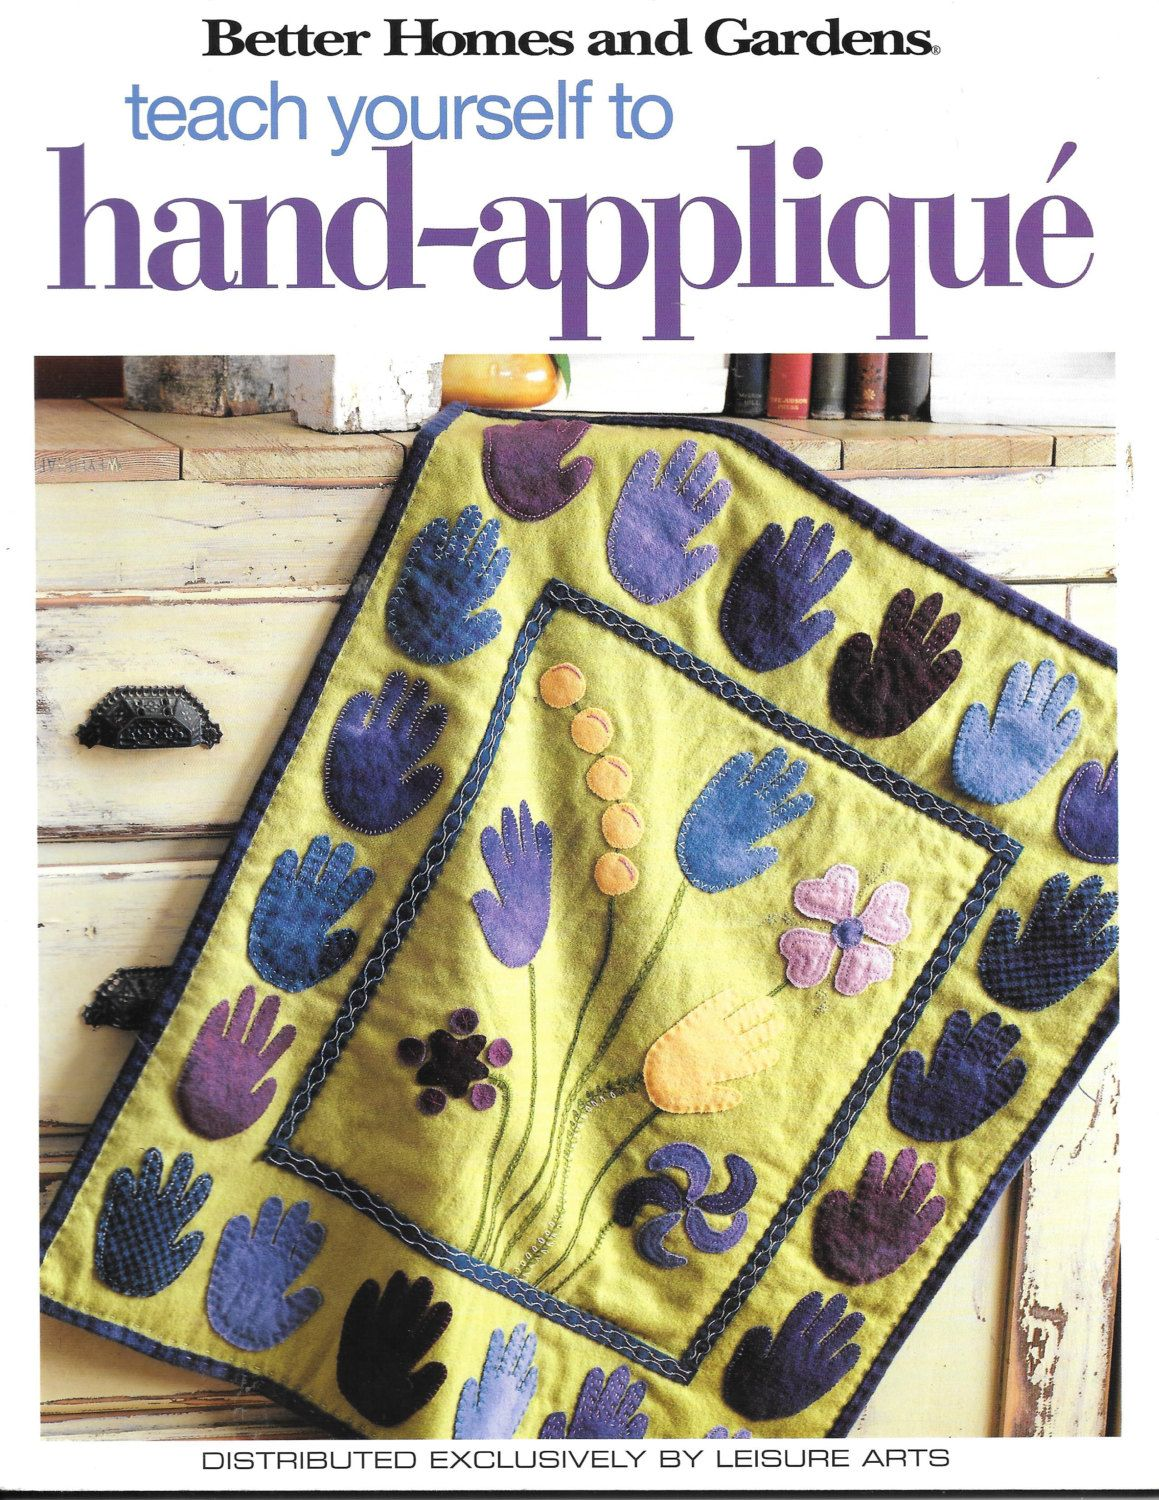 Better homes and gardens teach yourself to hand applique